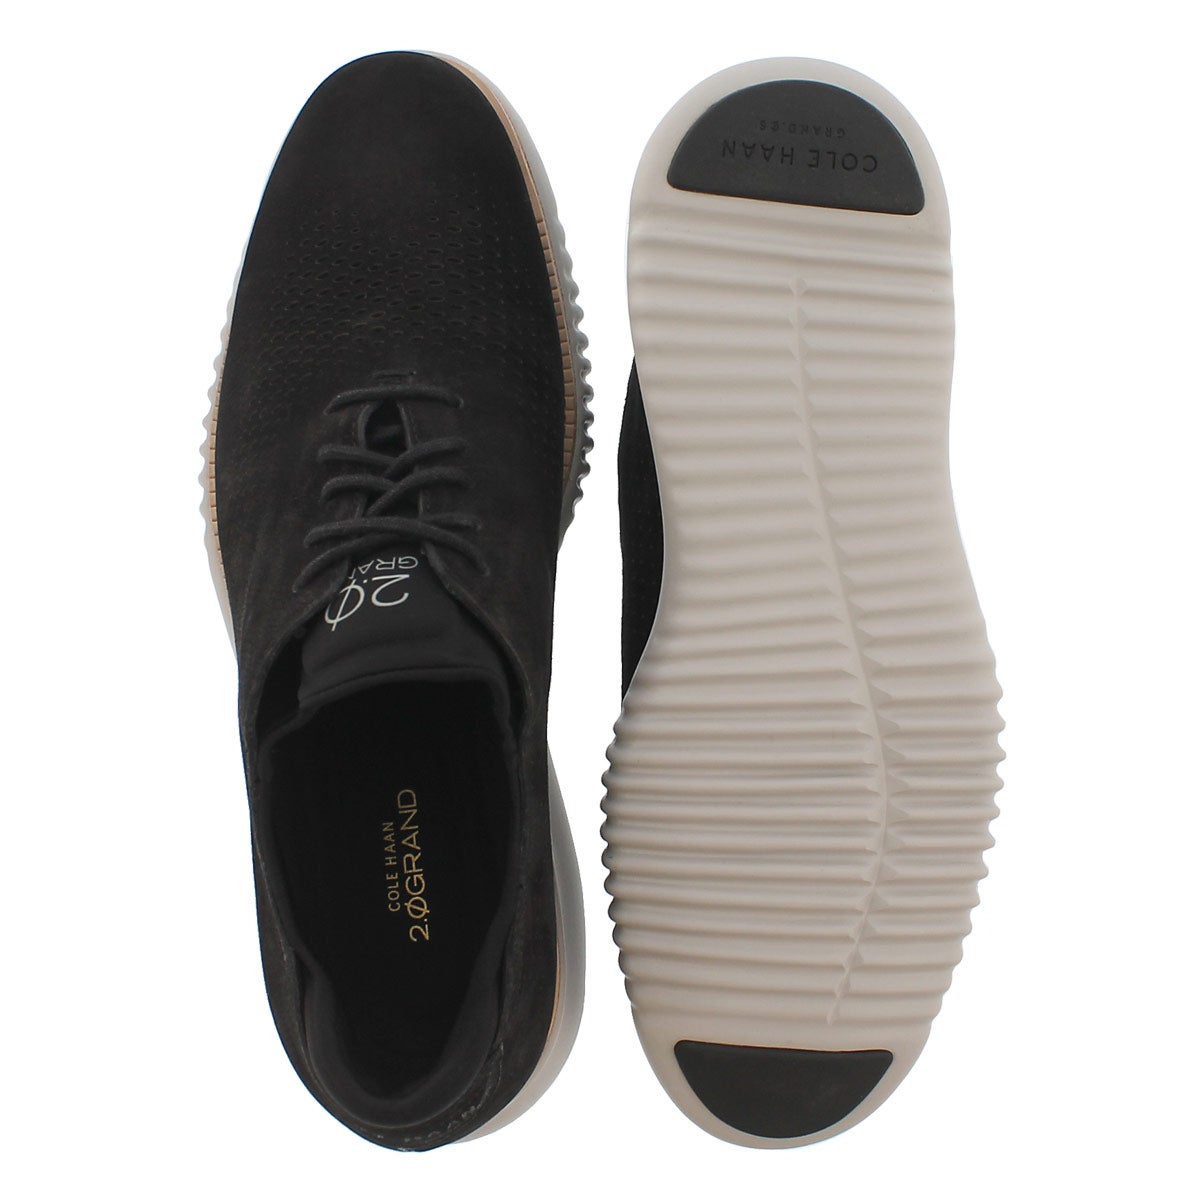 Mns Grand Laser Wing bk/gy casual oxford